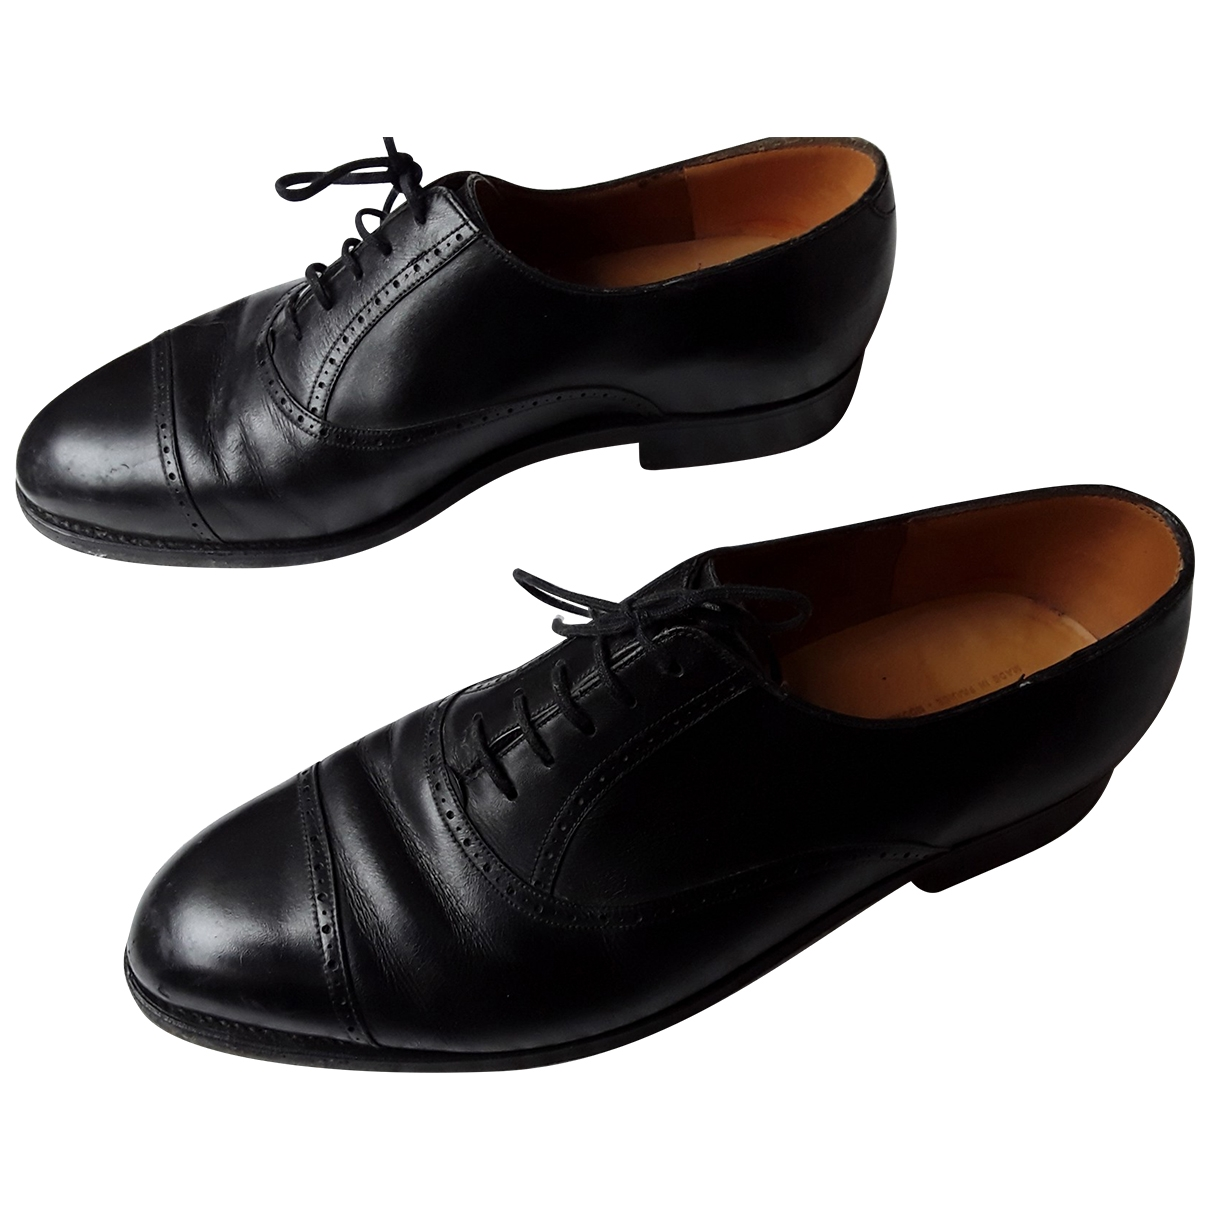 Jm Weston \N Black Leather Lace ups for Men 40 EU